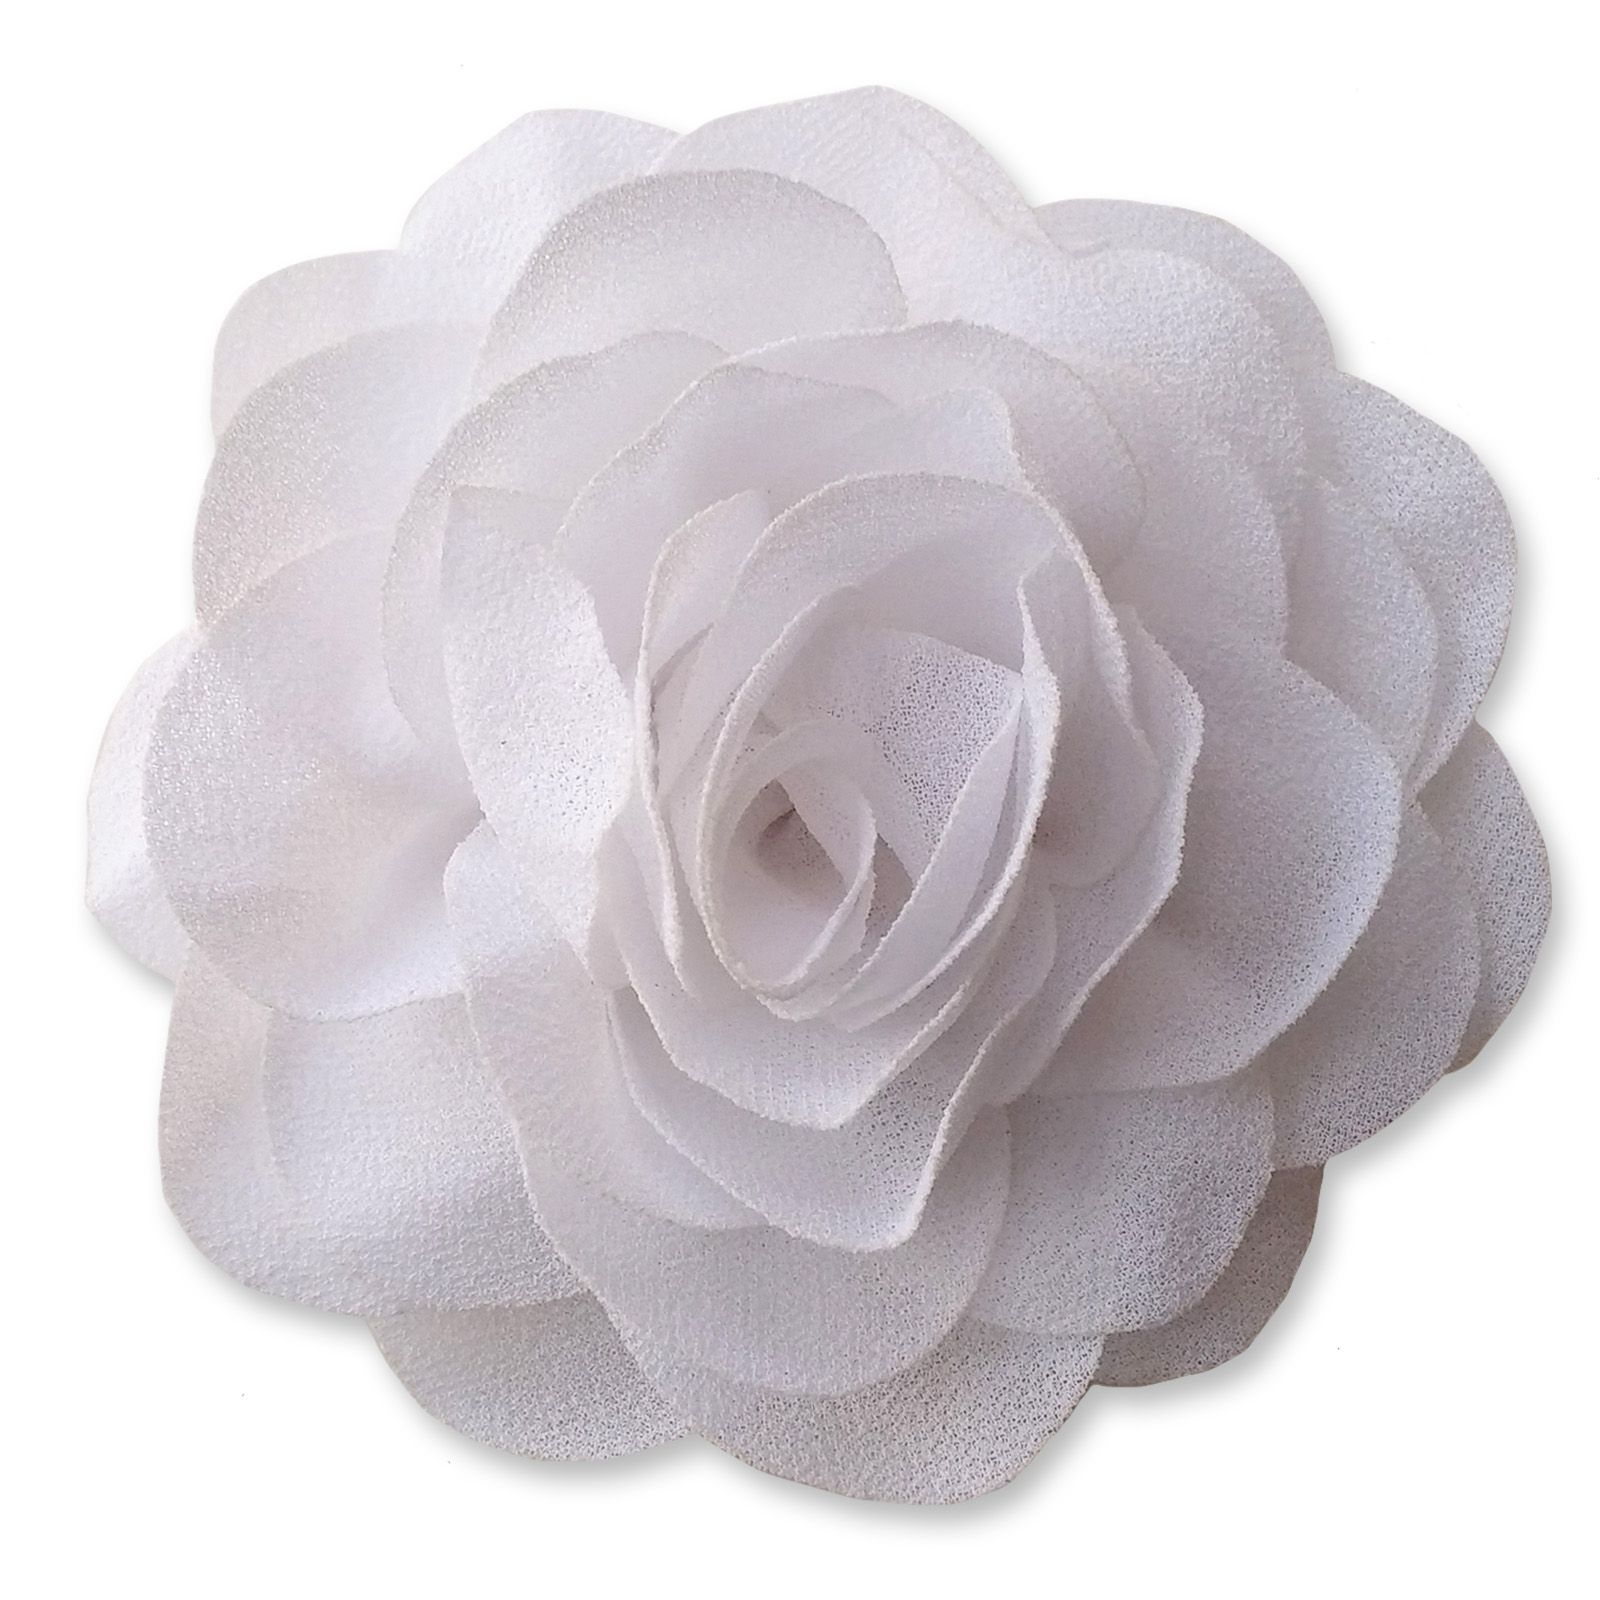 8cm Camellia White Fabric Flower Applique